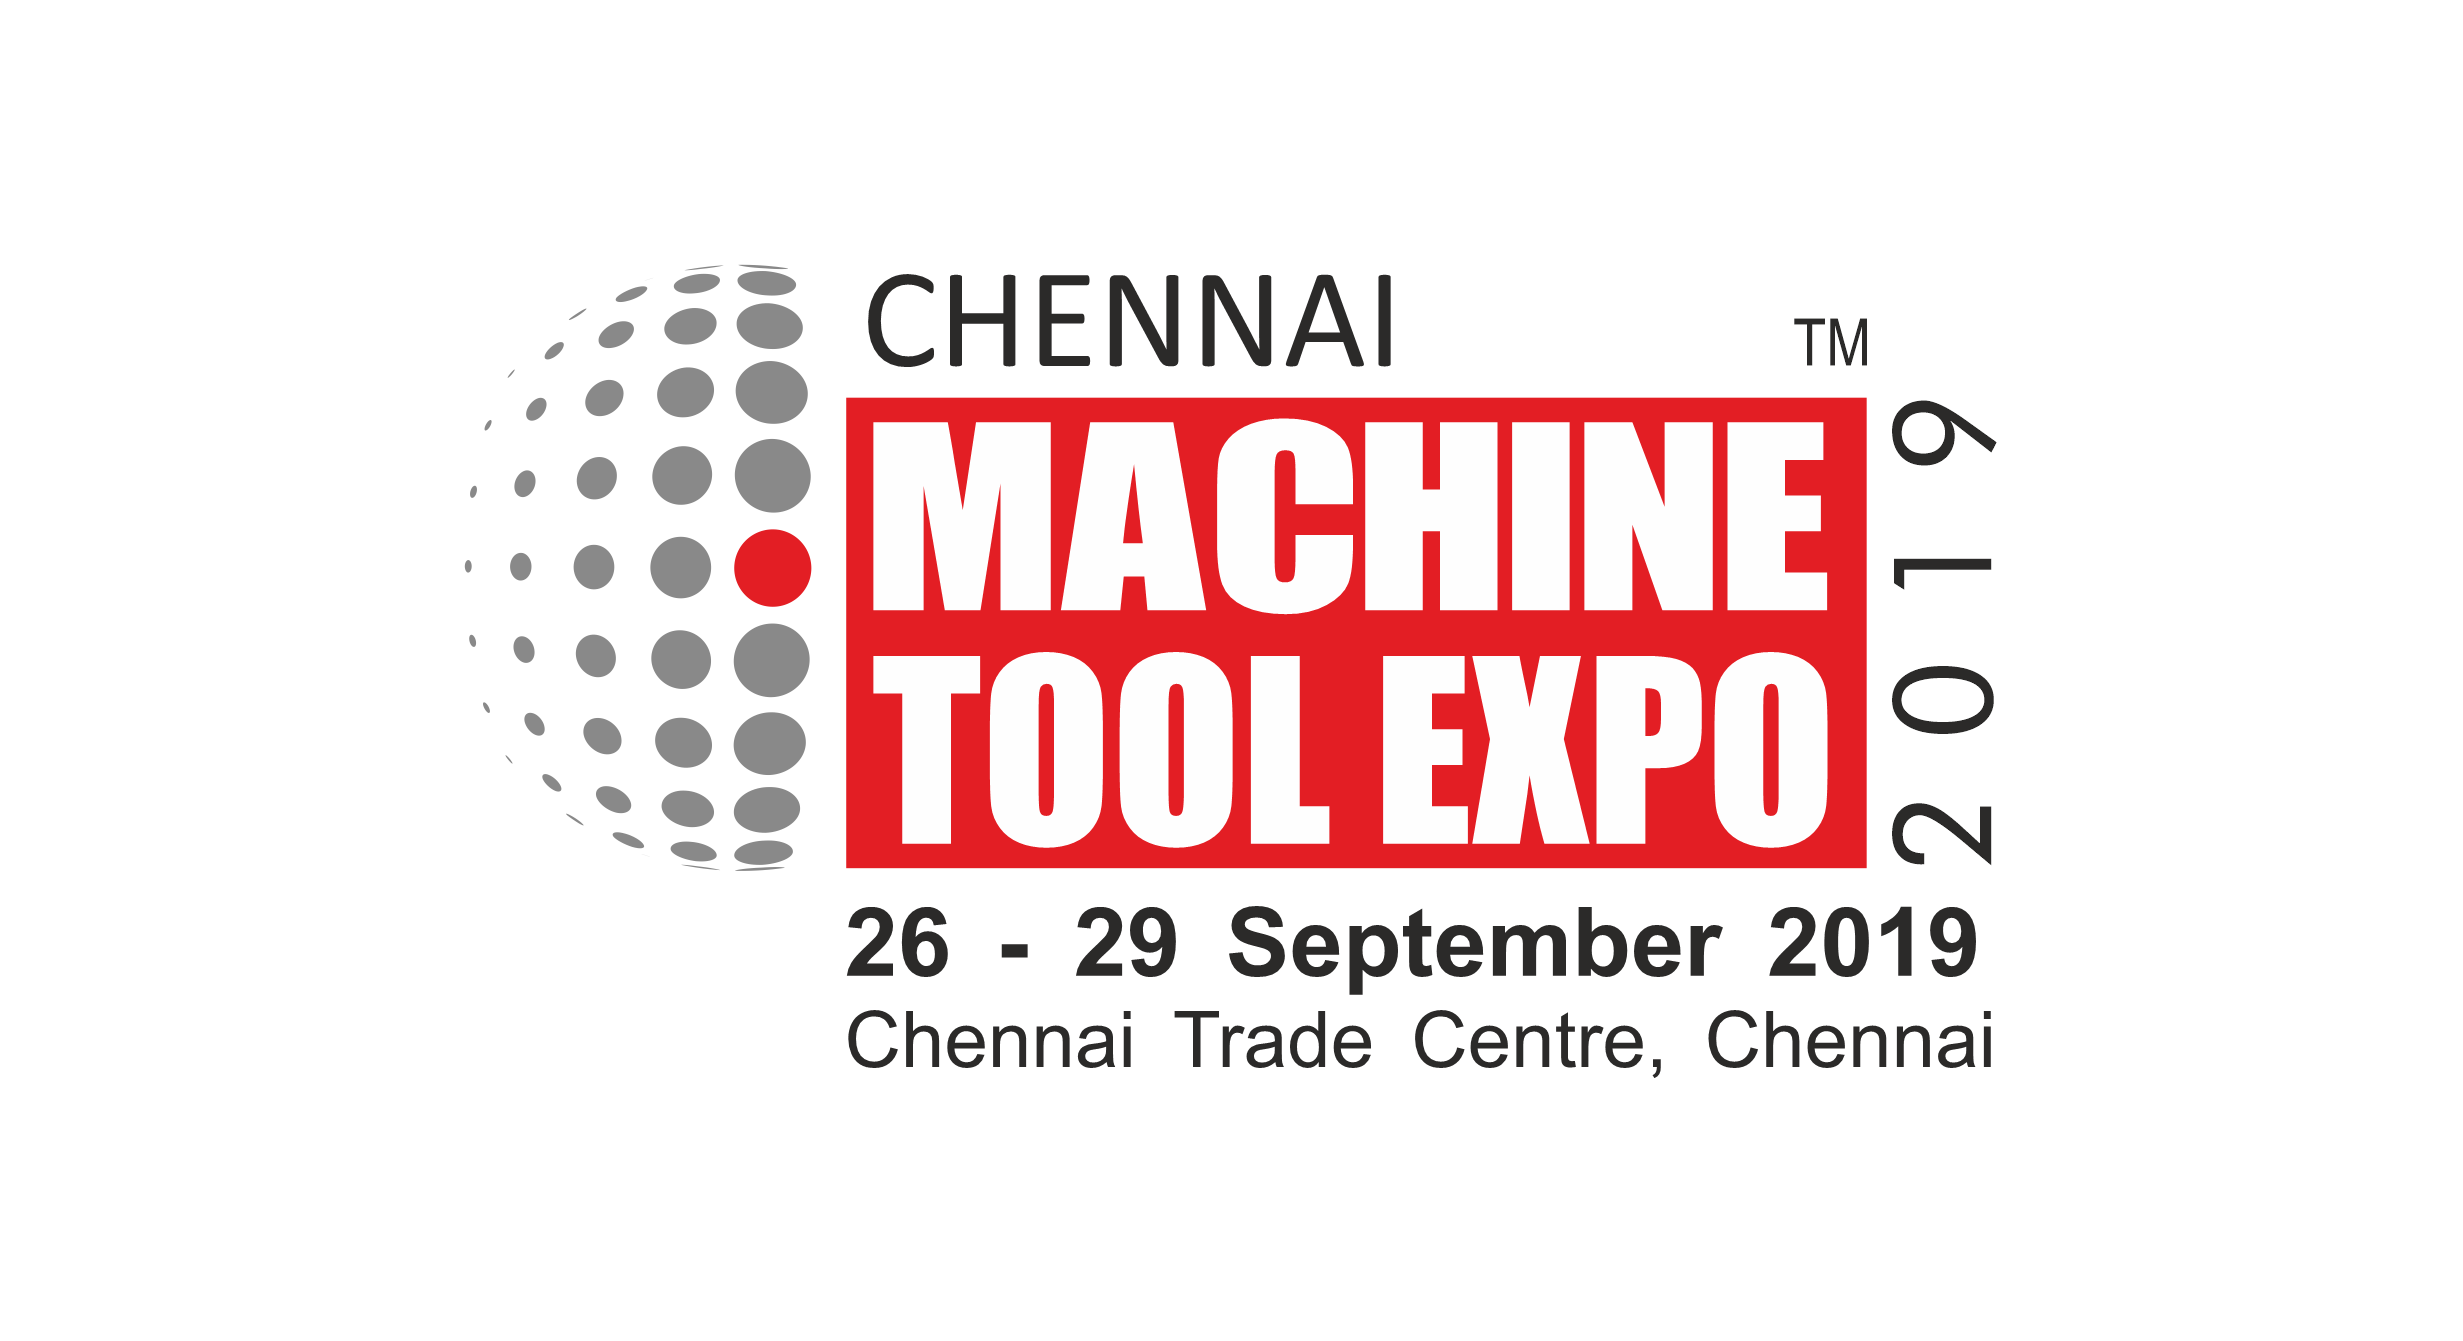 Chennai Machine Tool Expo 2019